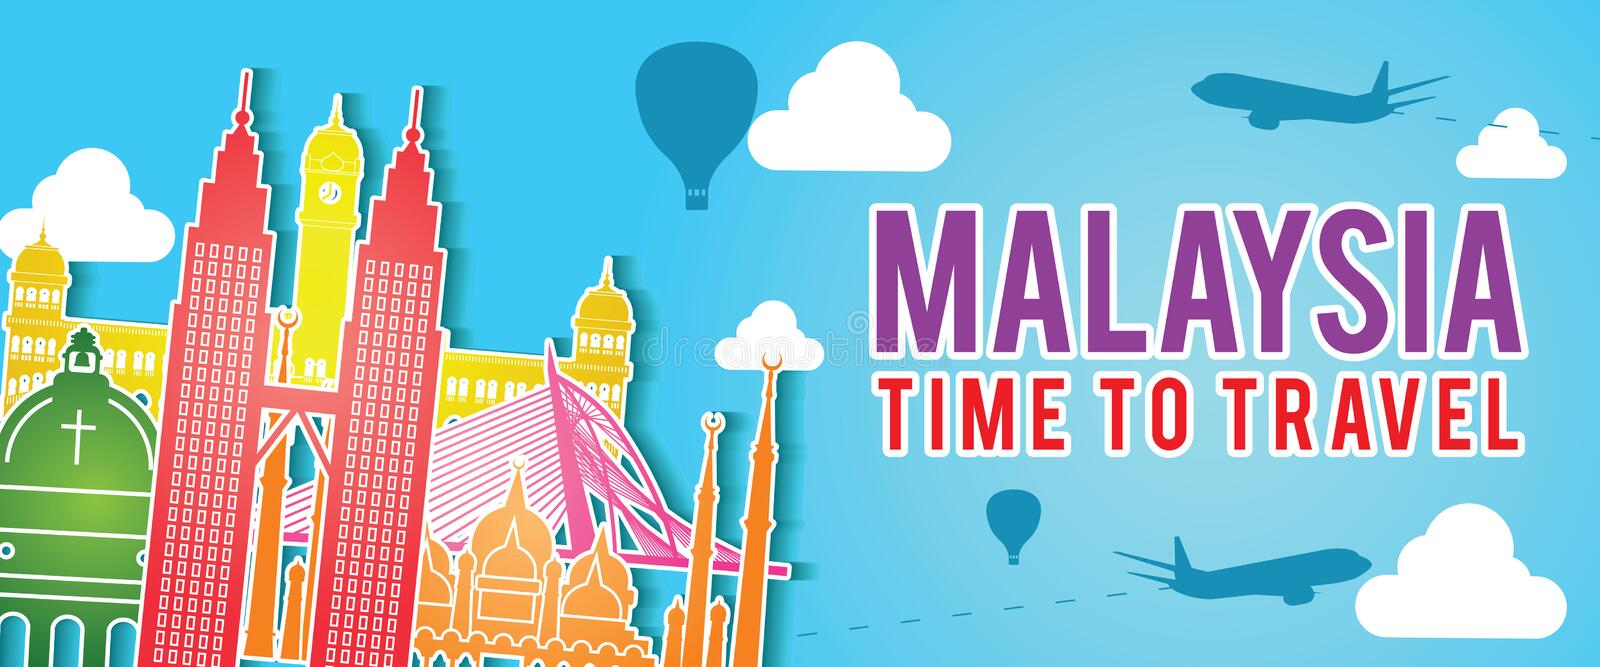 Banner of Malaysia famous landmark silhouette colorful style,plane and balloon fly around with cloud royalty free illustration